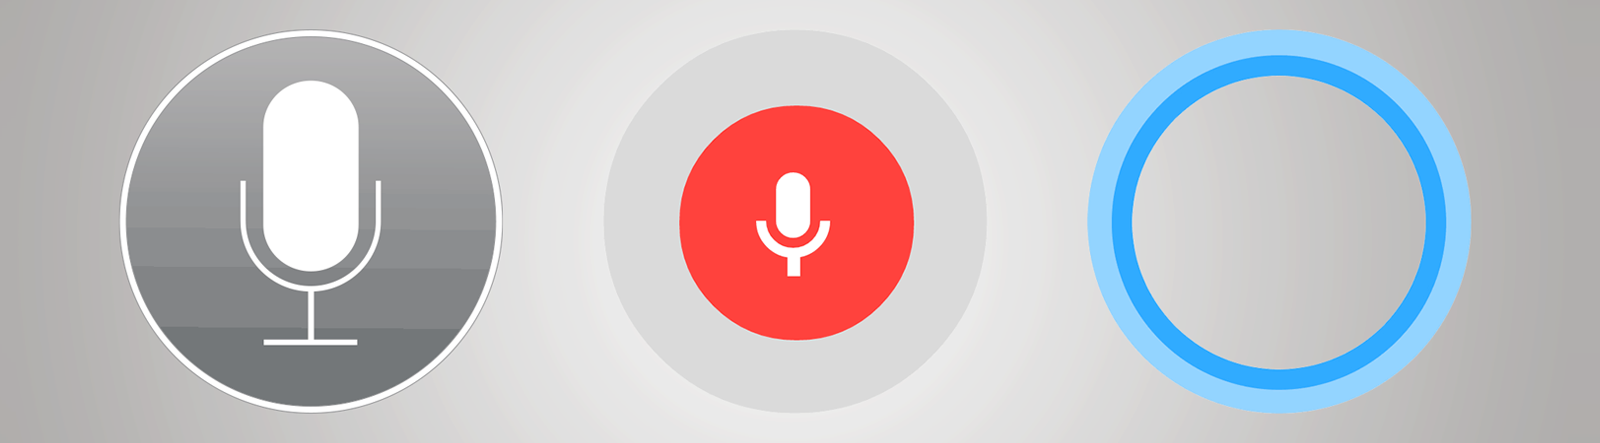 Siri vs Google Now vs Cortana: Which is best?